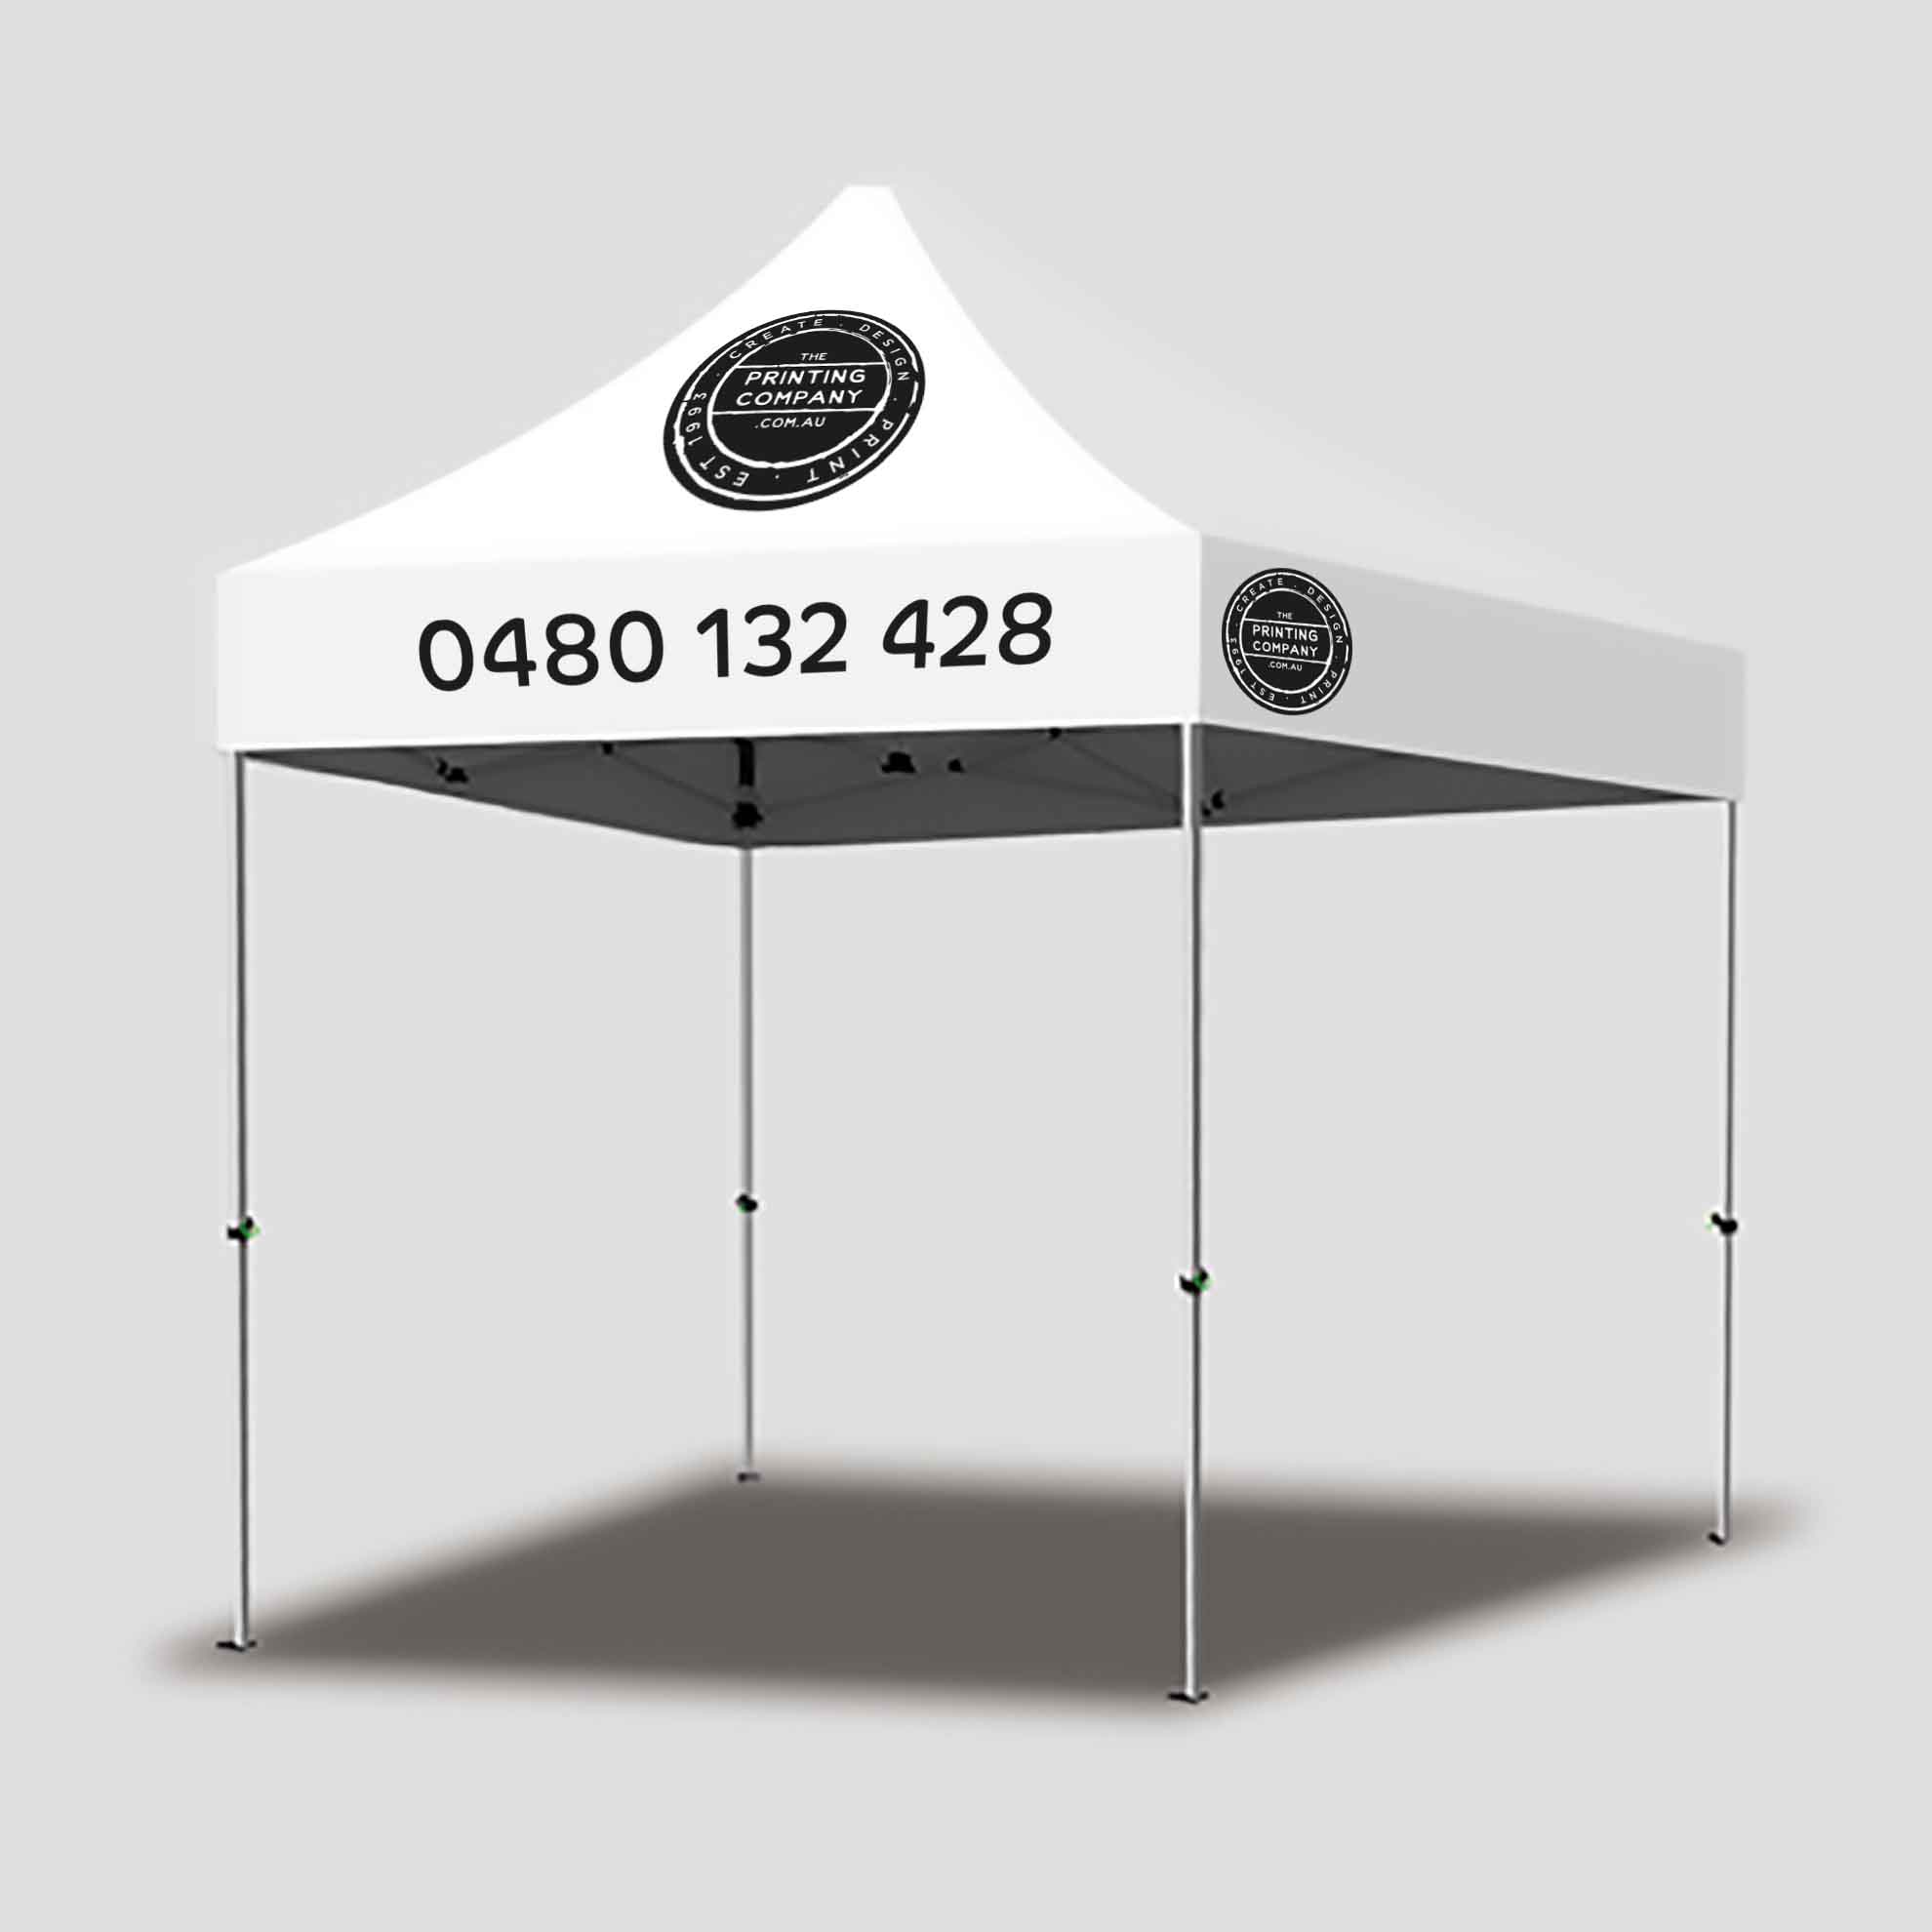 Marquee Frame with Custom Printed Canopy